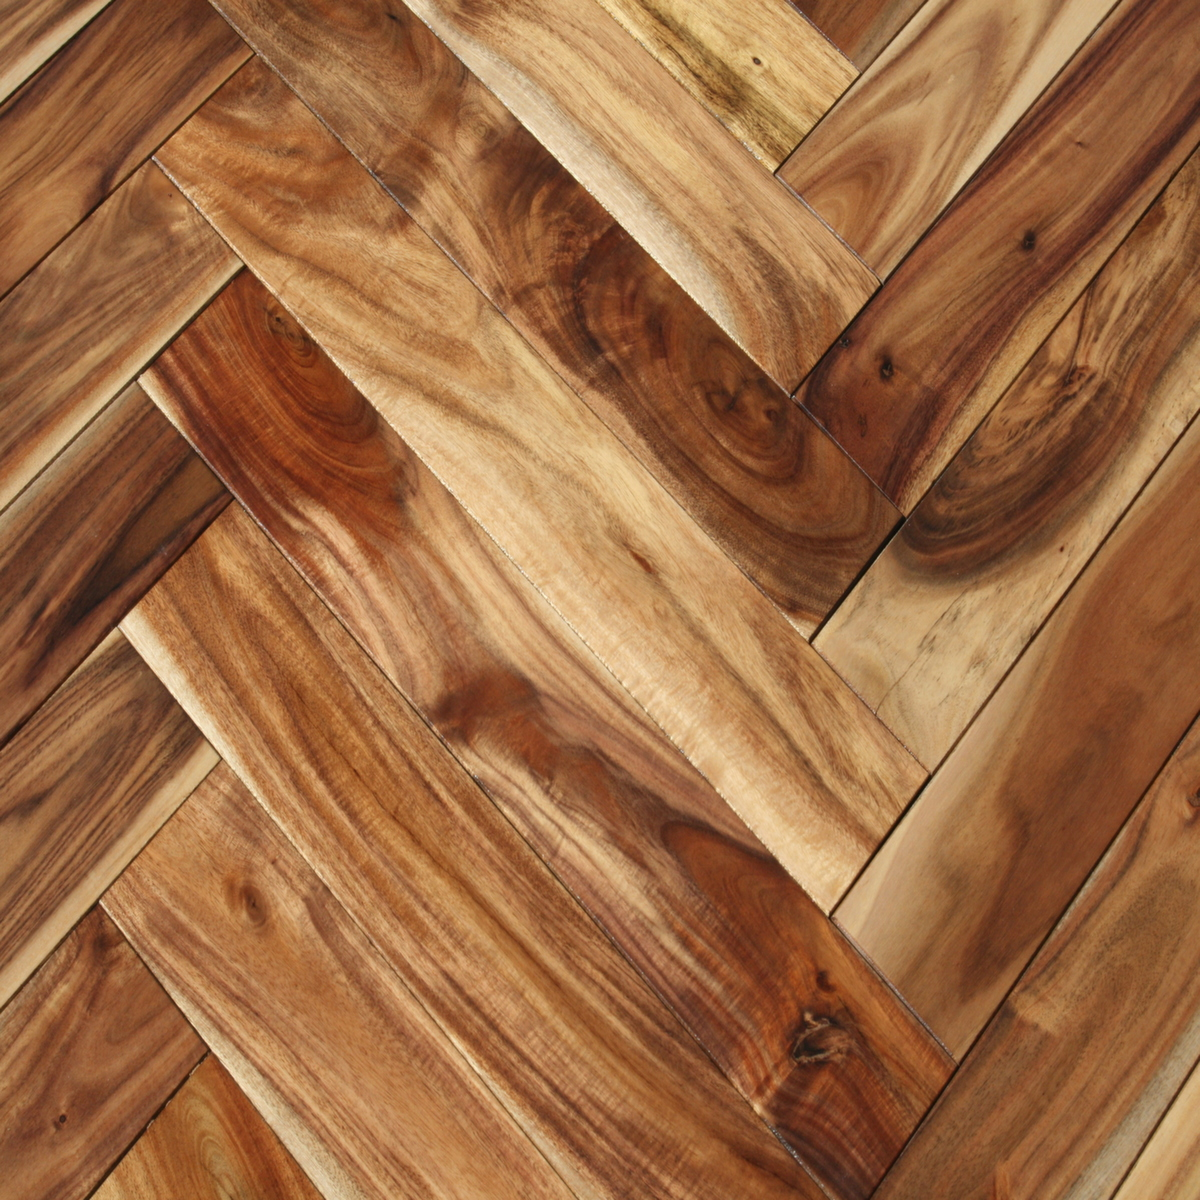 Acacia Natural Herringbone Hardwood Flooring Unique Wood